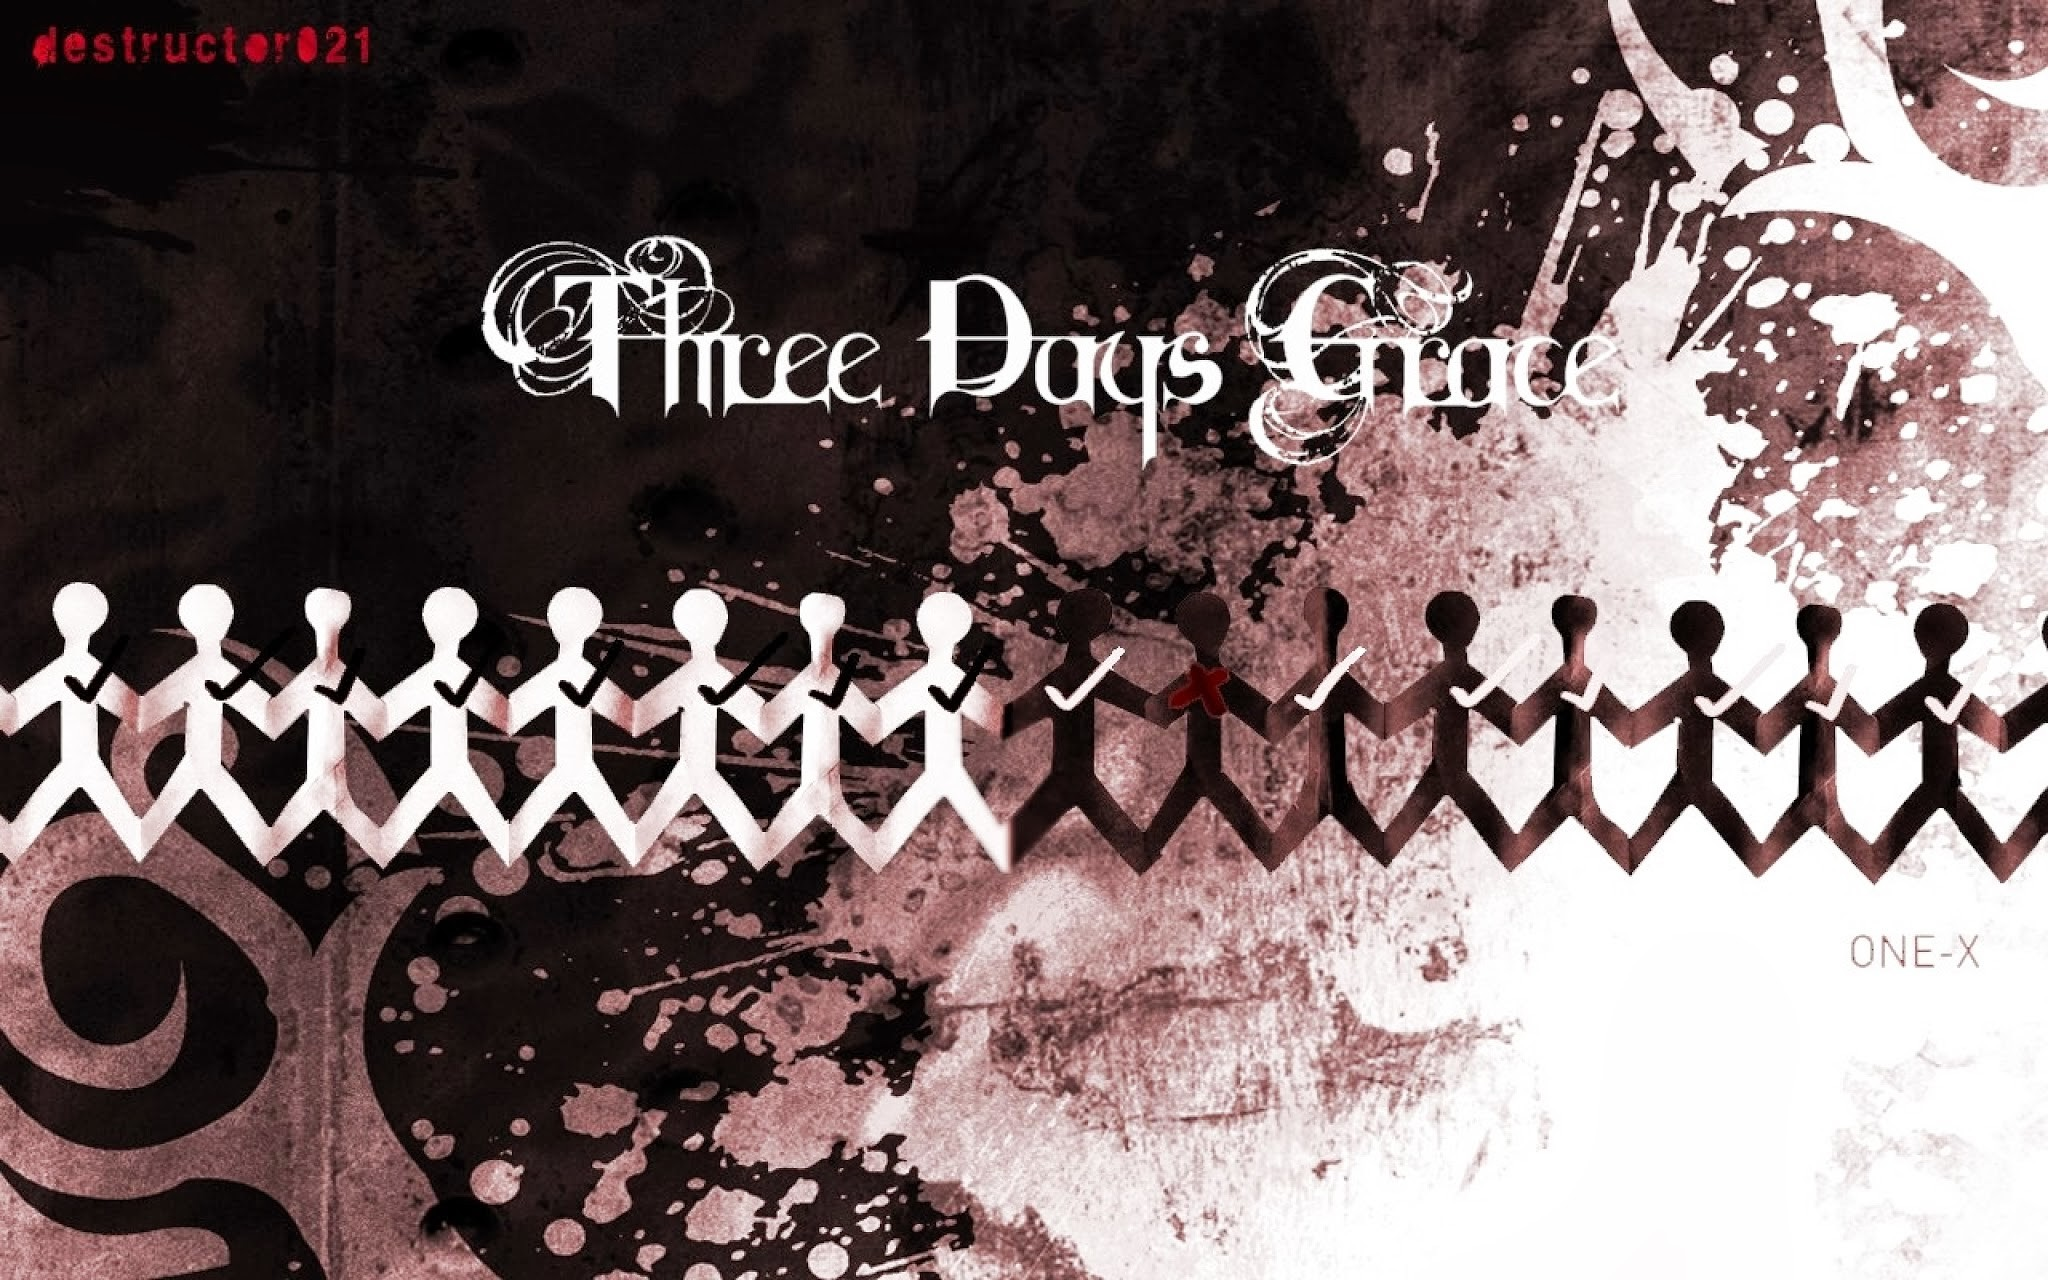 Three days grace wallpapers 64 images - Three days grace wallpaper ...